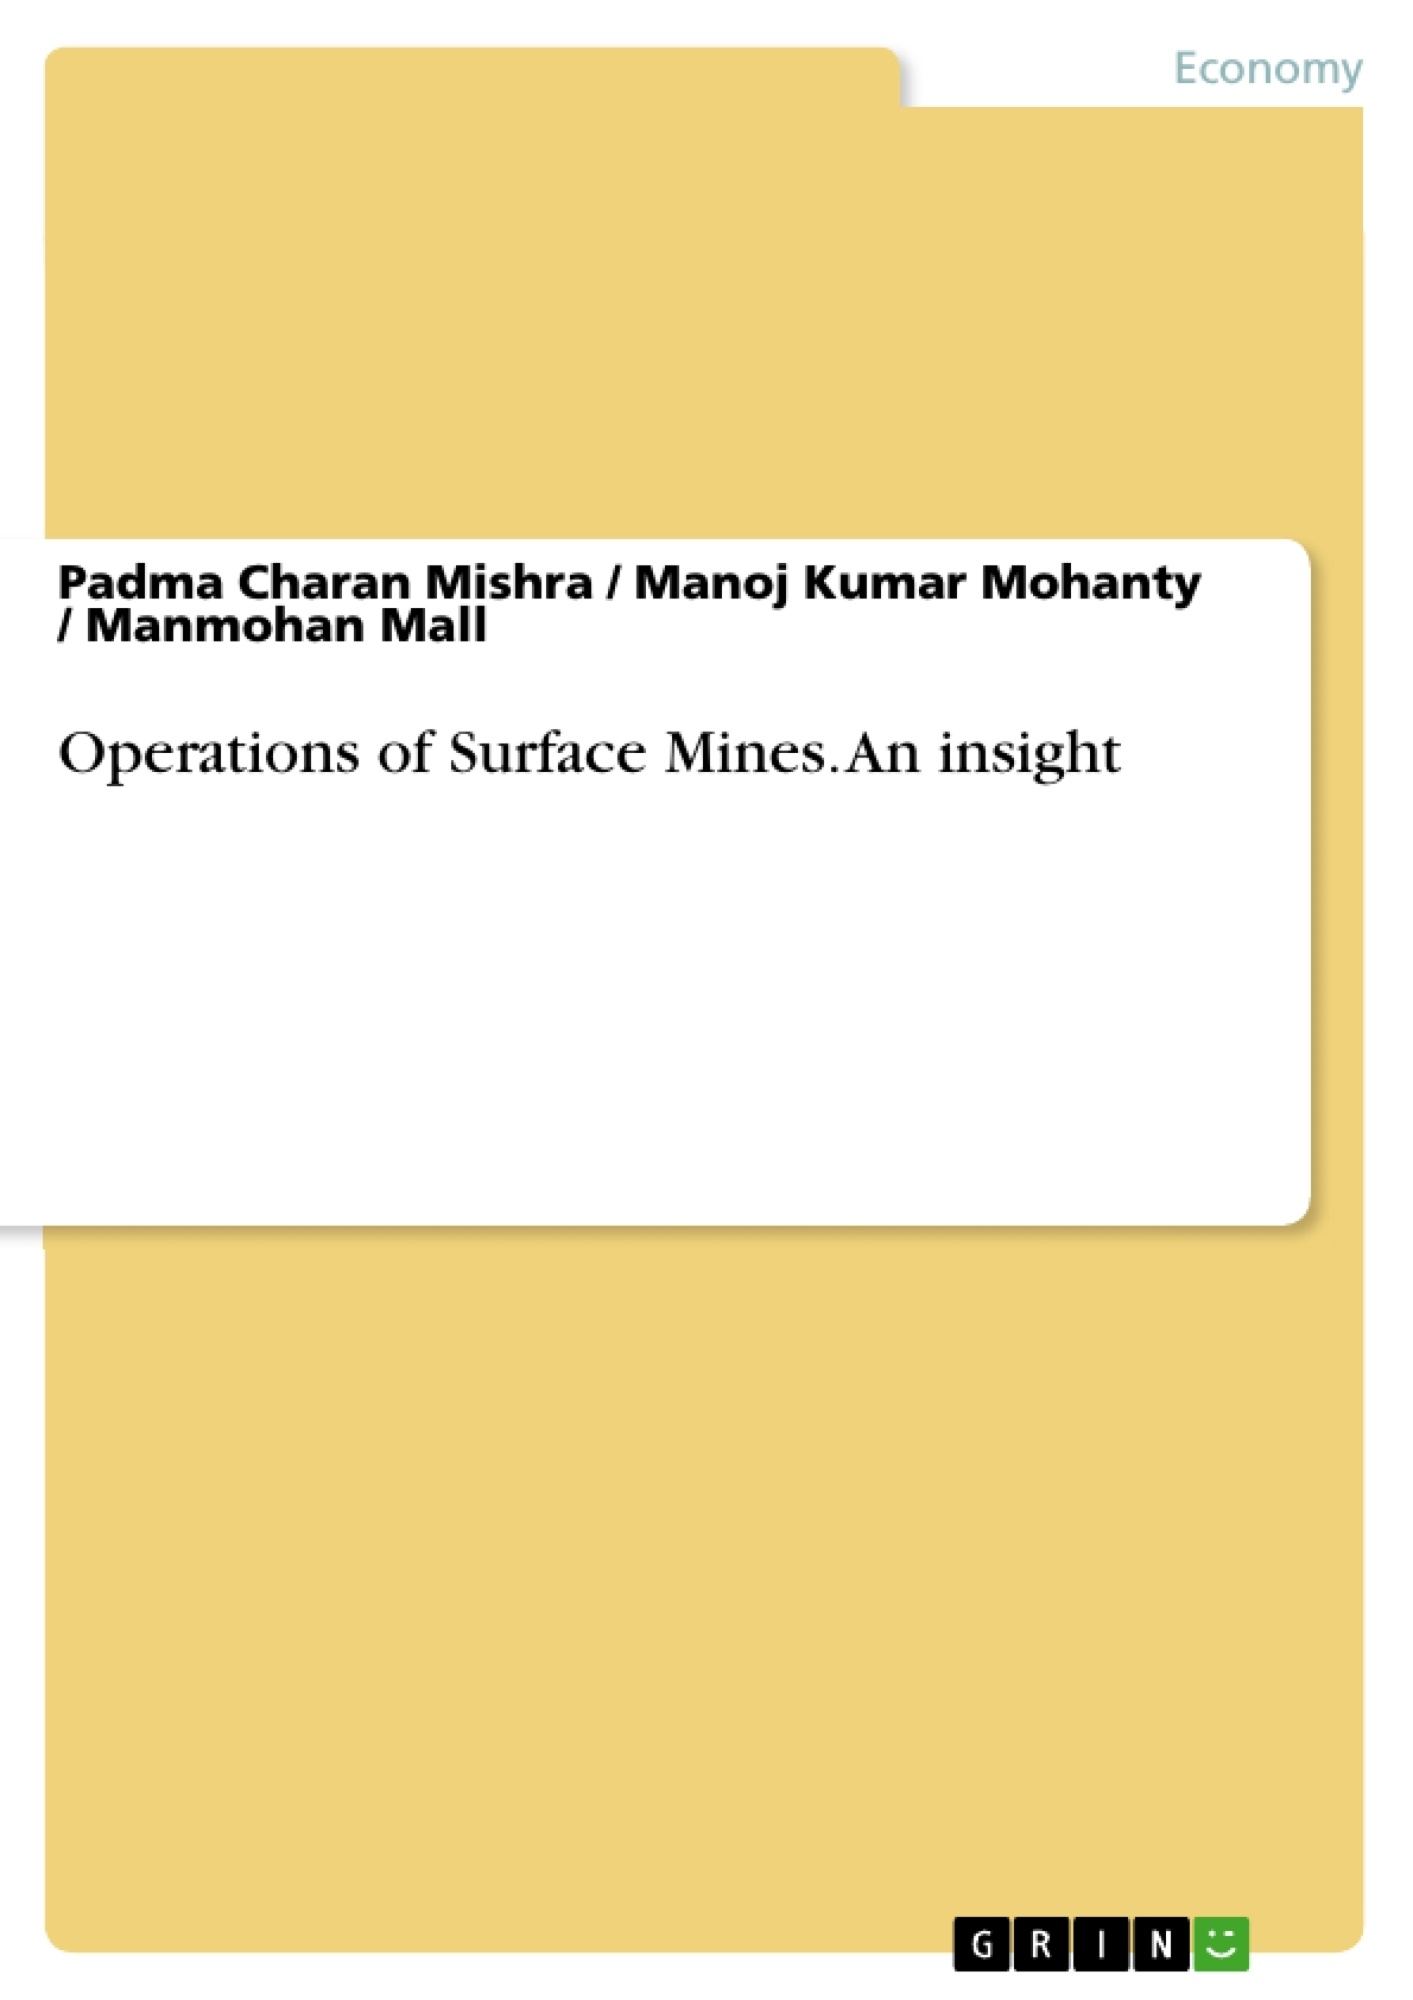 Title: Operations of Surface Mines. An insight